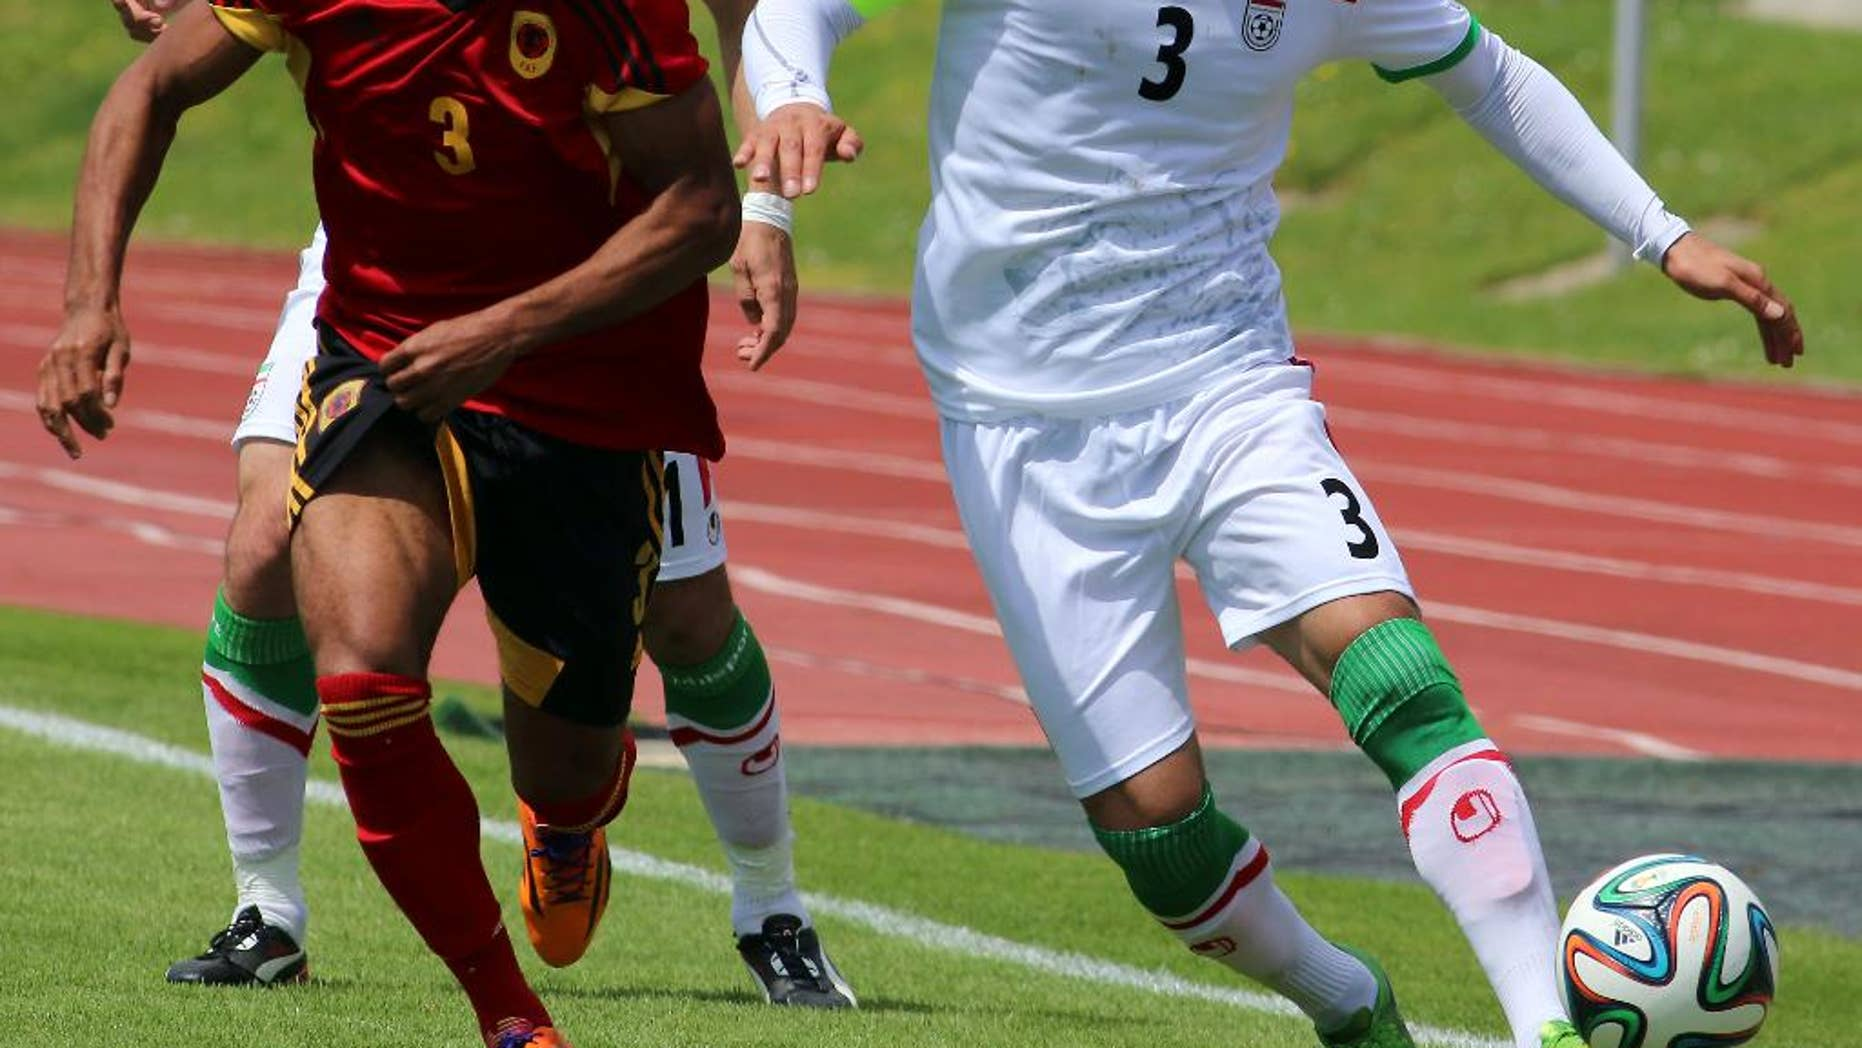 Iran's Ehsan Hajisafi, right, challenges for a ball with Lunguinha, left, of Angola during a friendly soccer match between Iran and Angola, in Hartberg, Austria, Friday, May 30, 2014. (AP Photo/Ronald Zak)